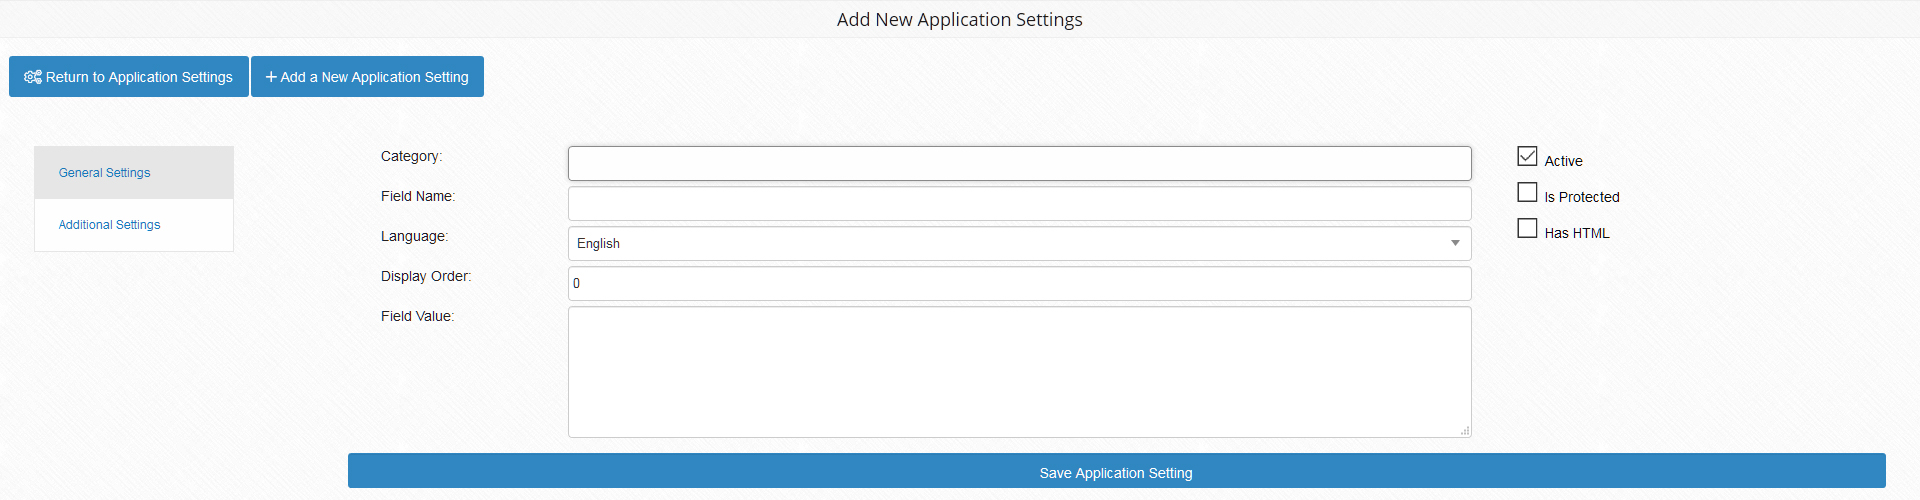 Application Settings Advanced